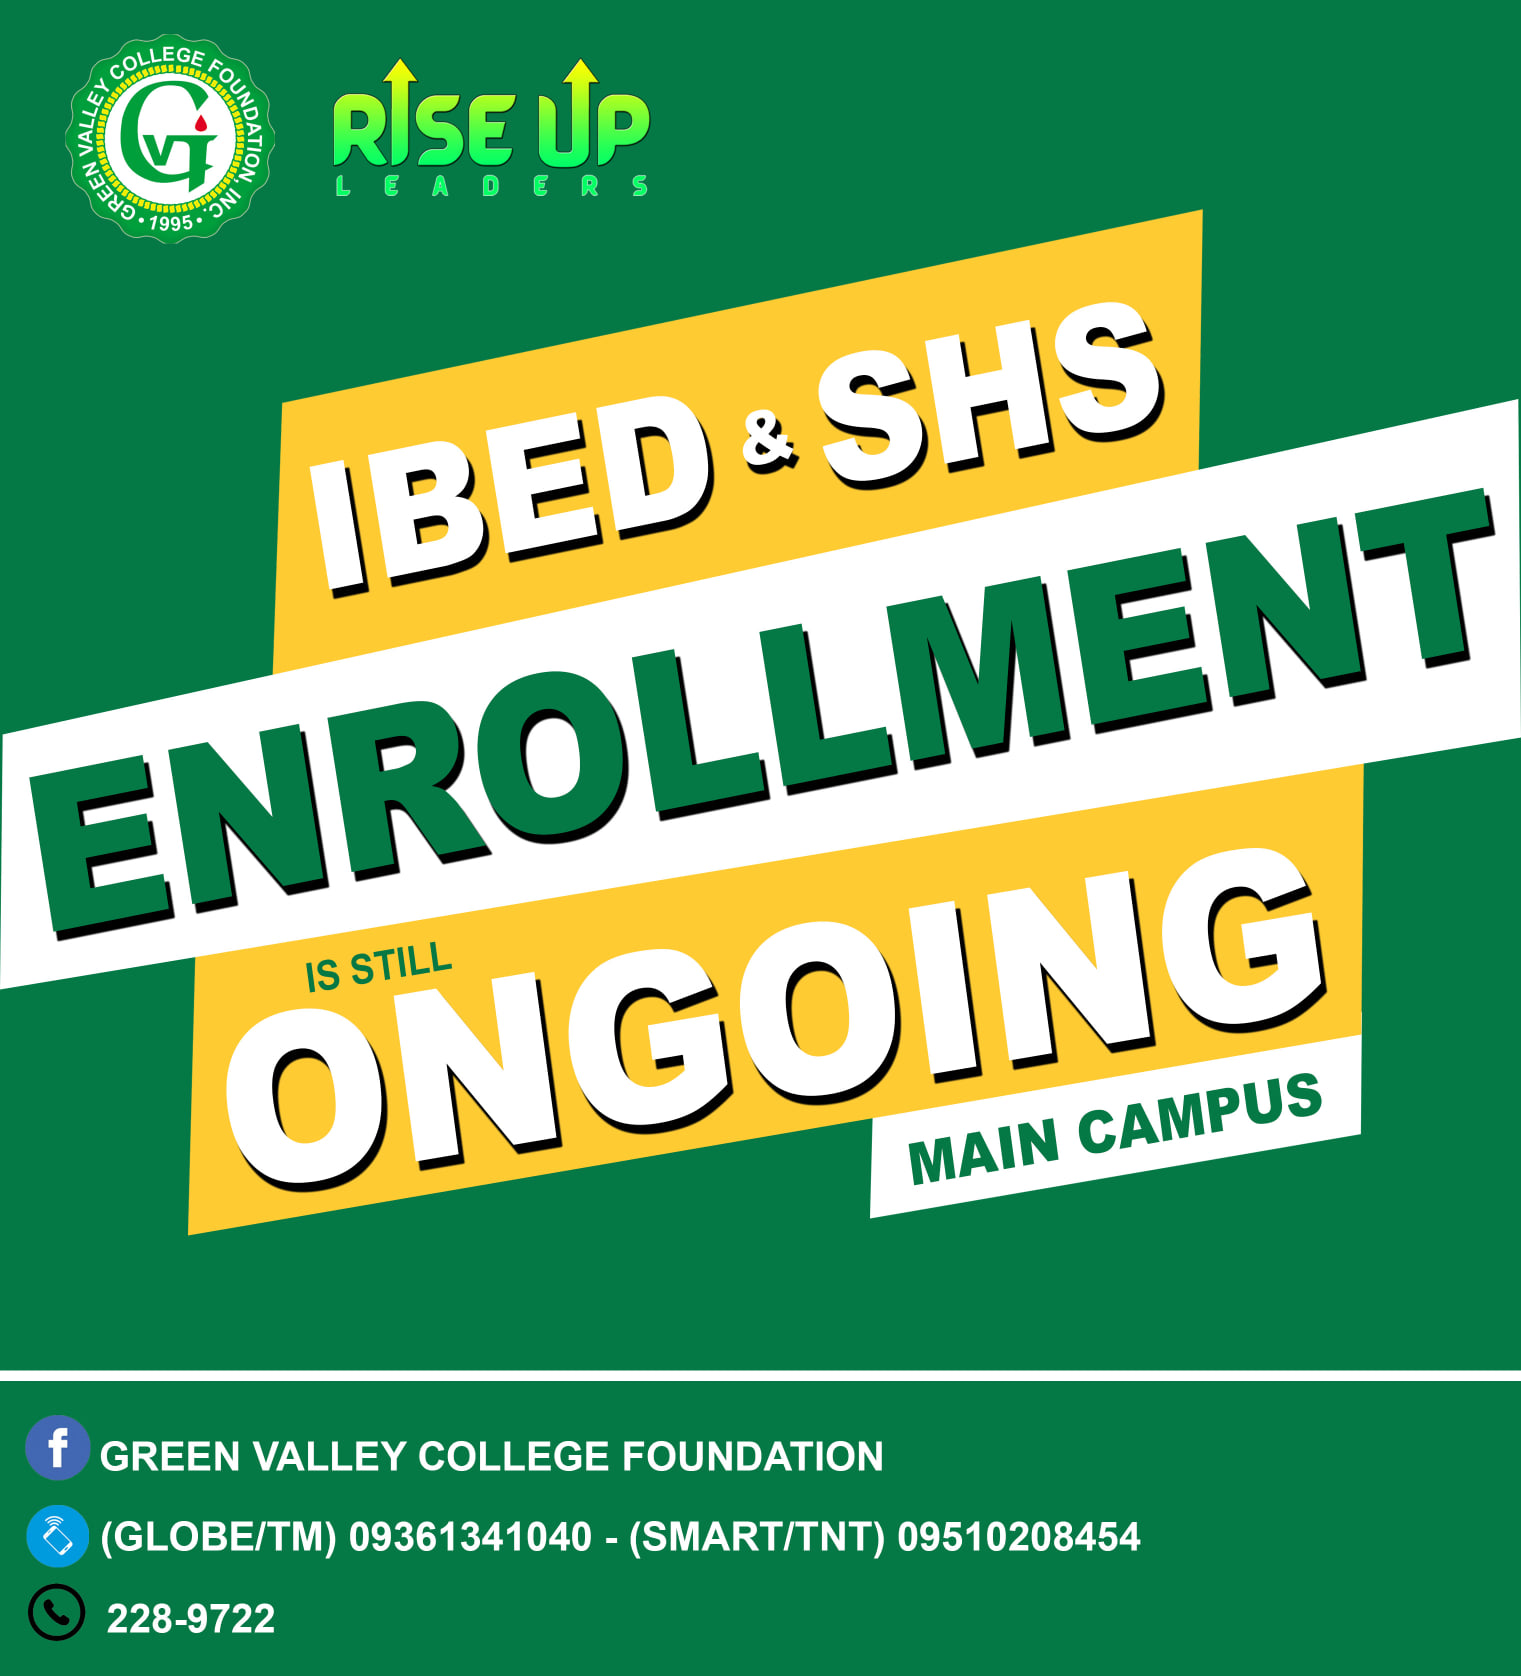 IBEd Enrollment is still ongoing